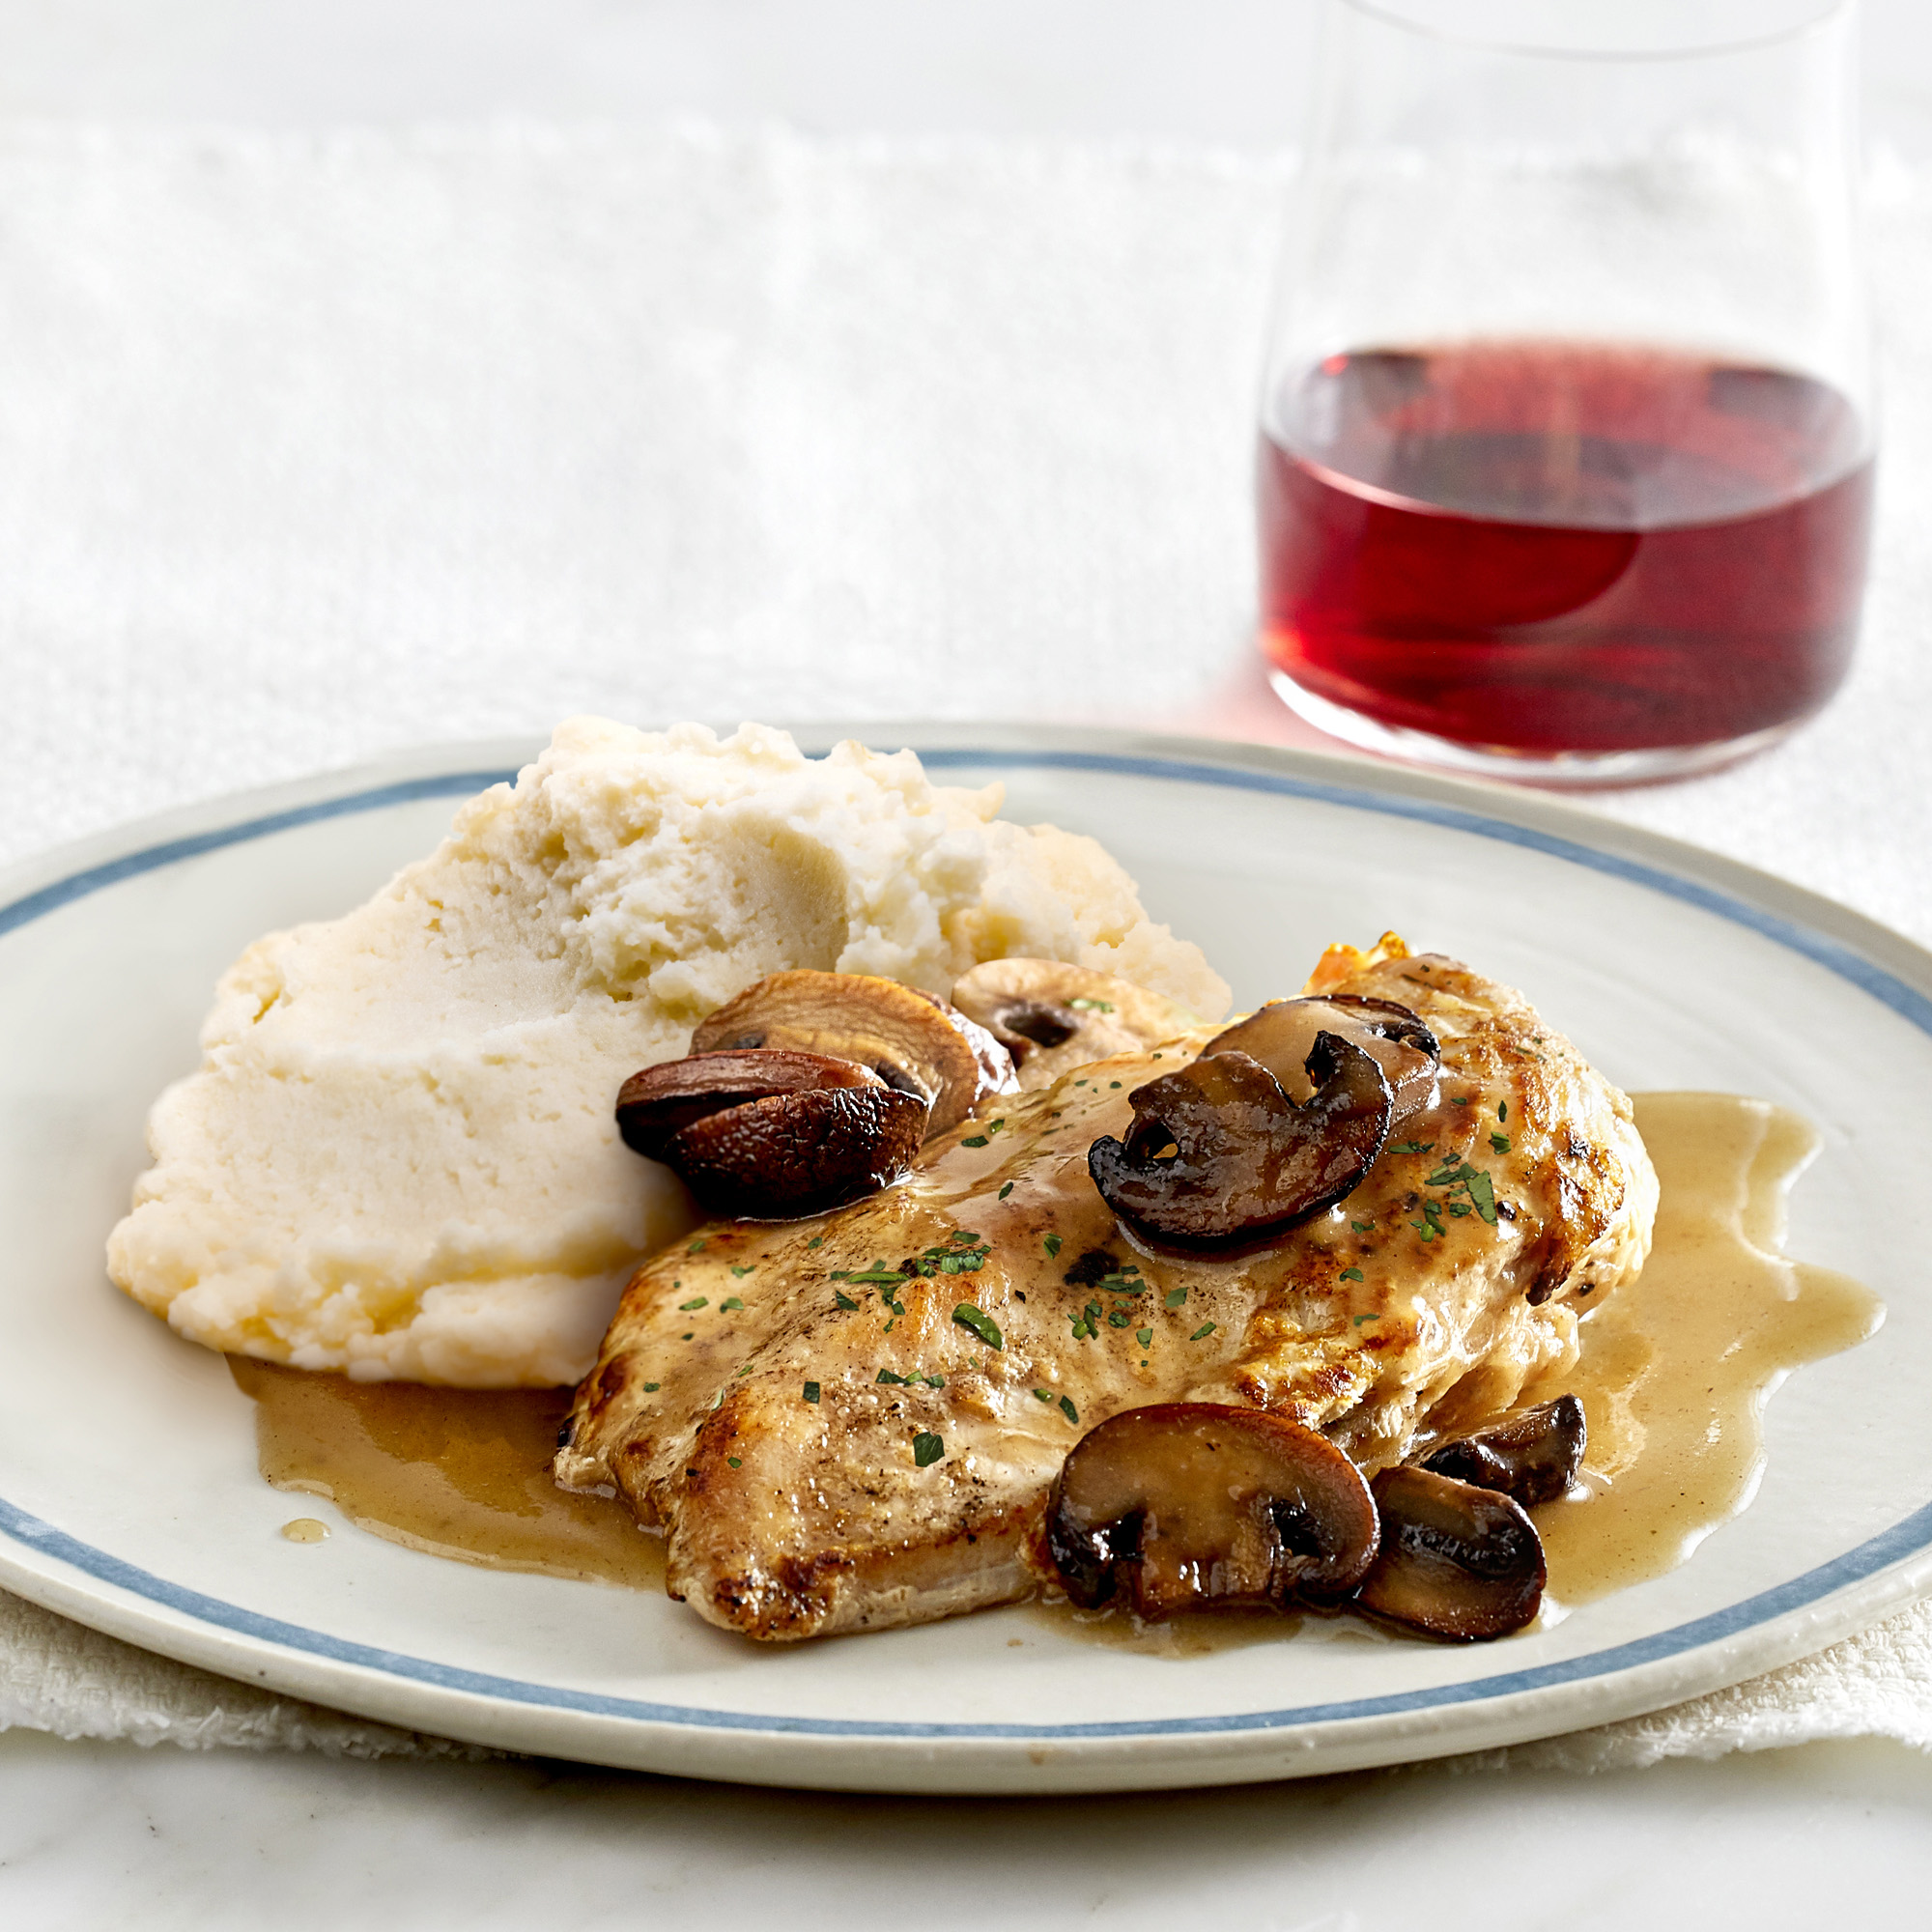 Babeth's Feast - 10 Chicken Marsala Main Courses - Heat & Serve - individually portioned - each 8 oz